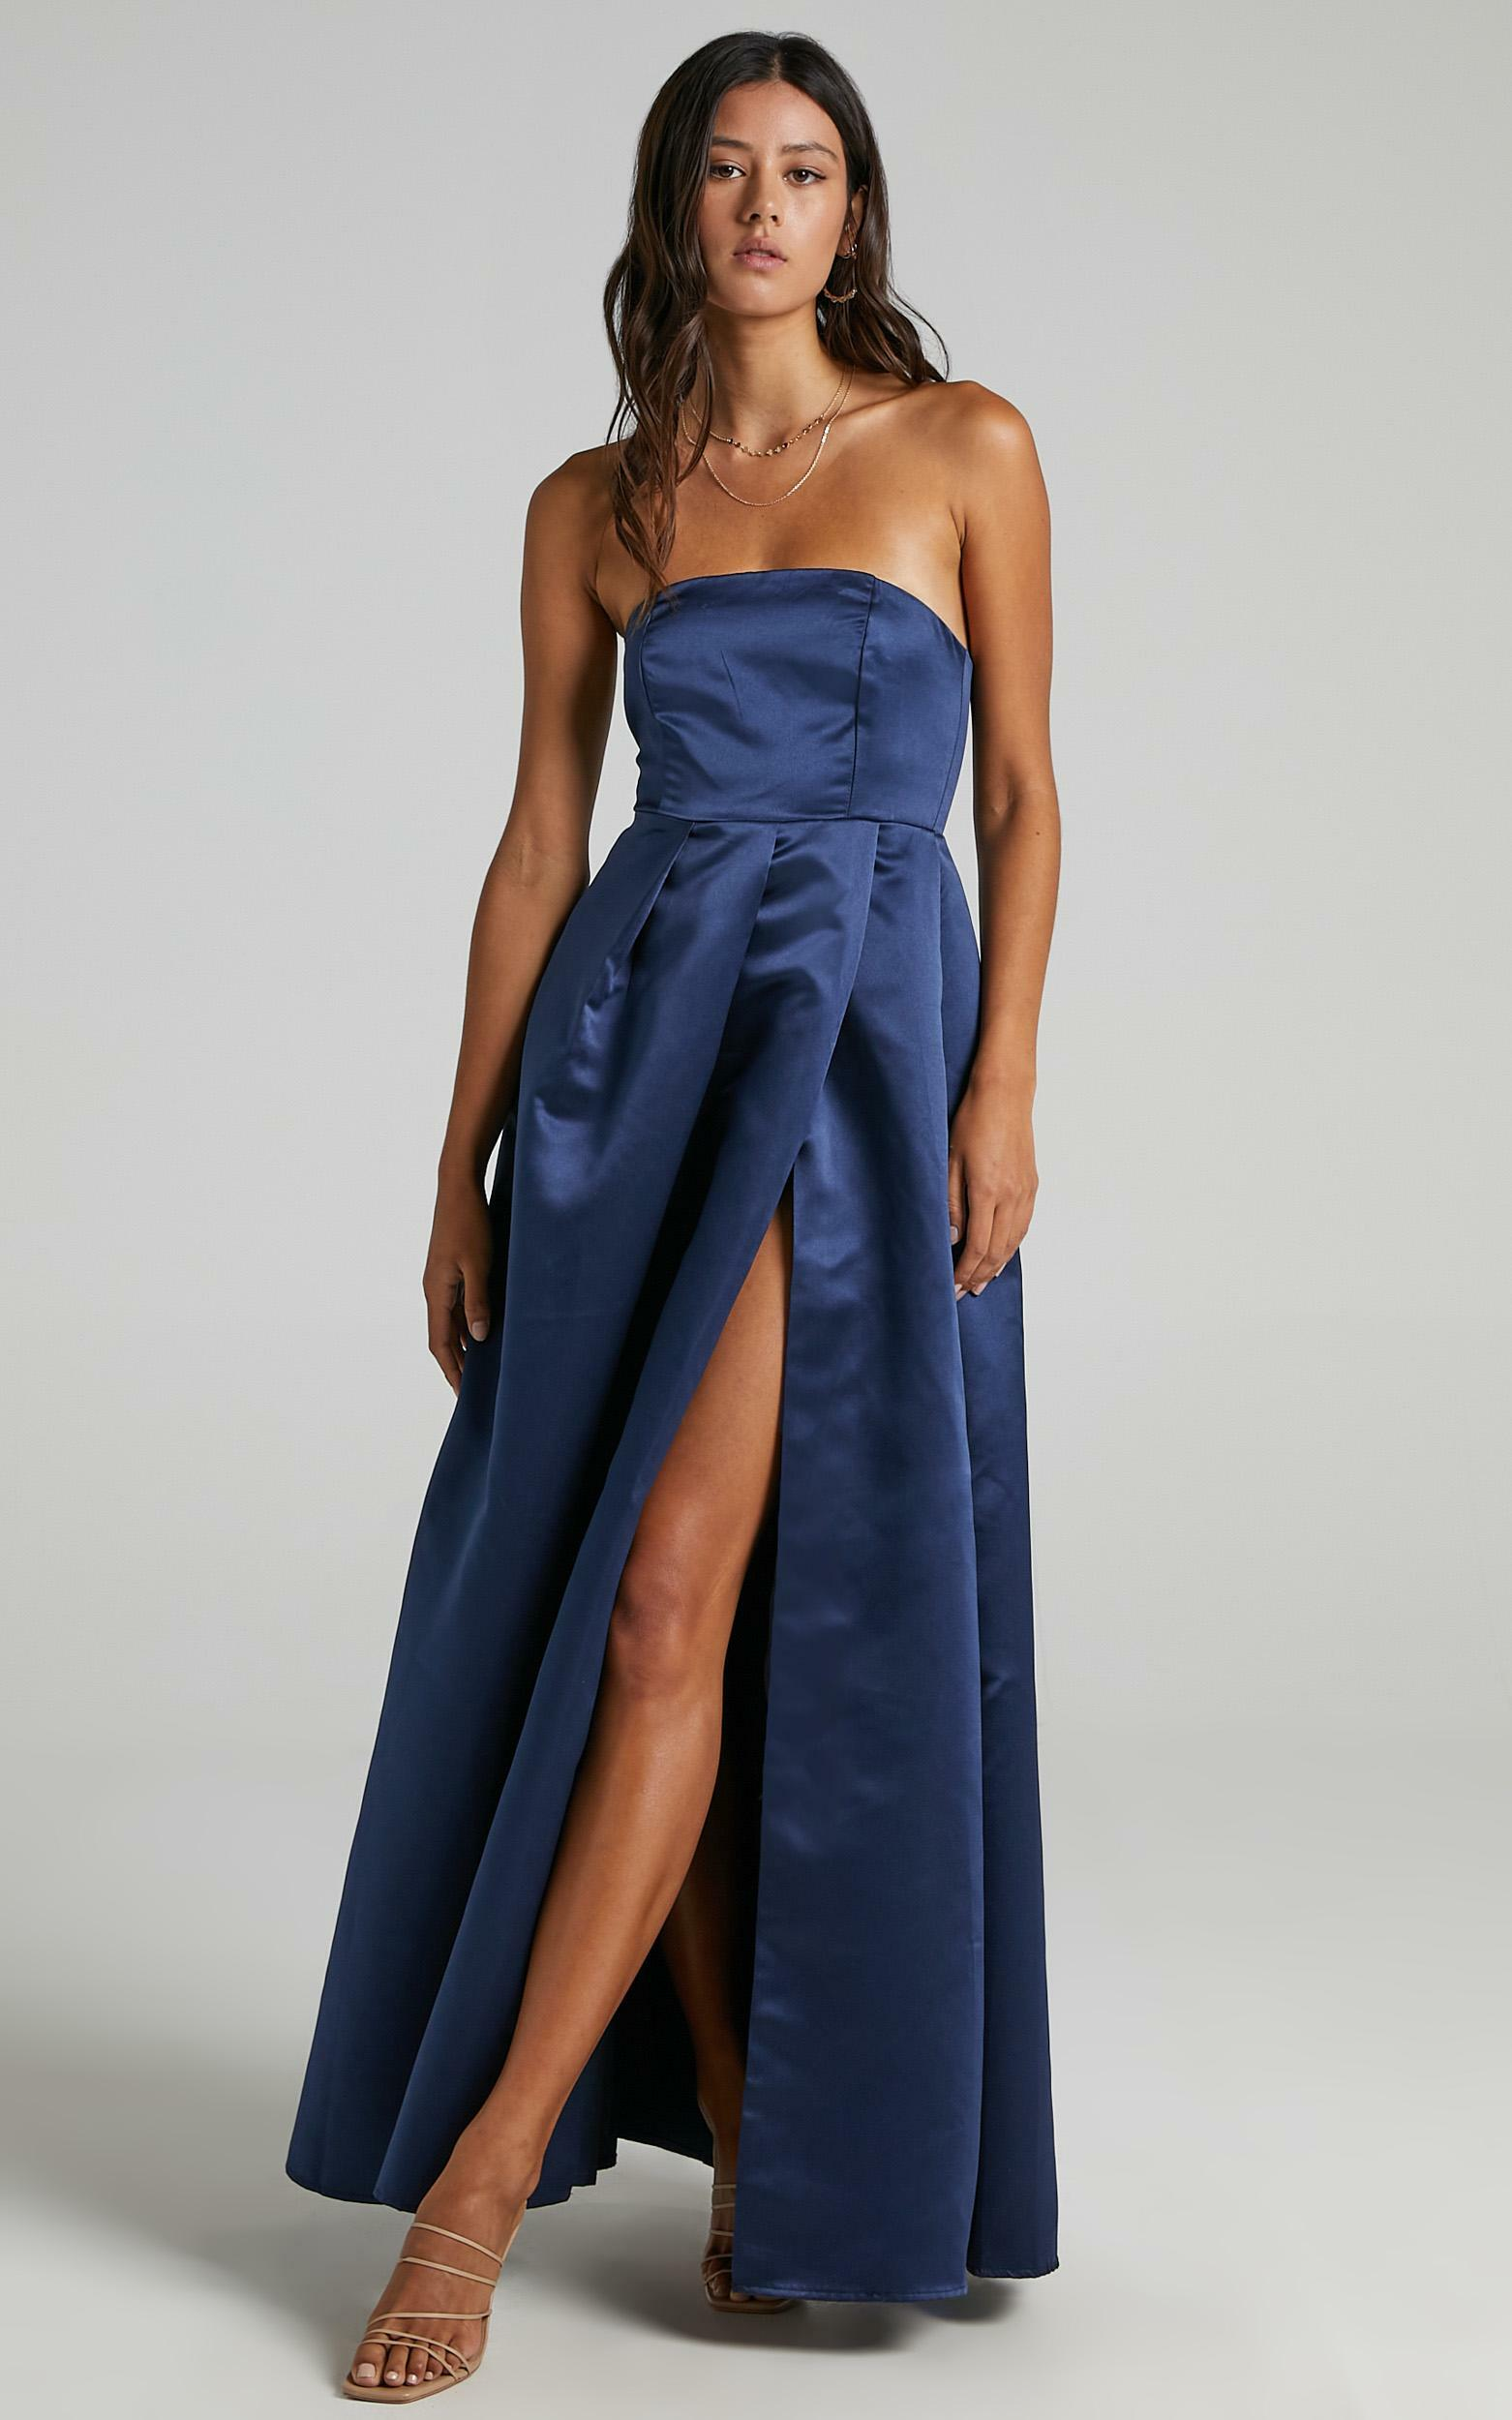 Queen Of The Show Dress in Navy Satin - 20, NVY2, hi-res image number null